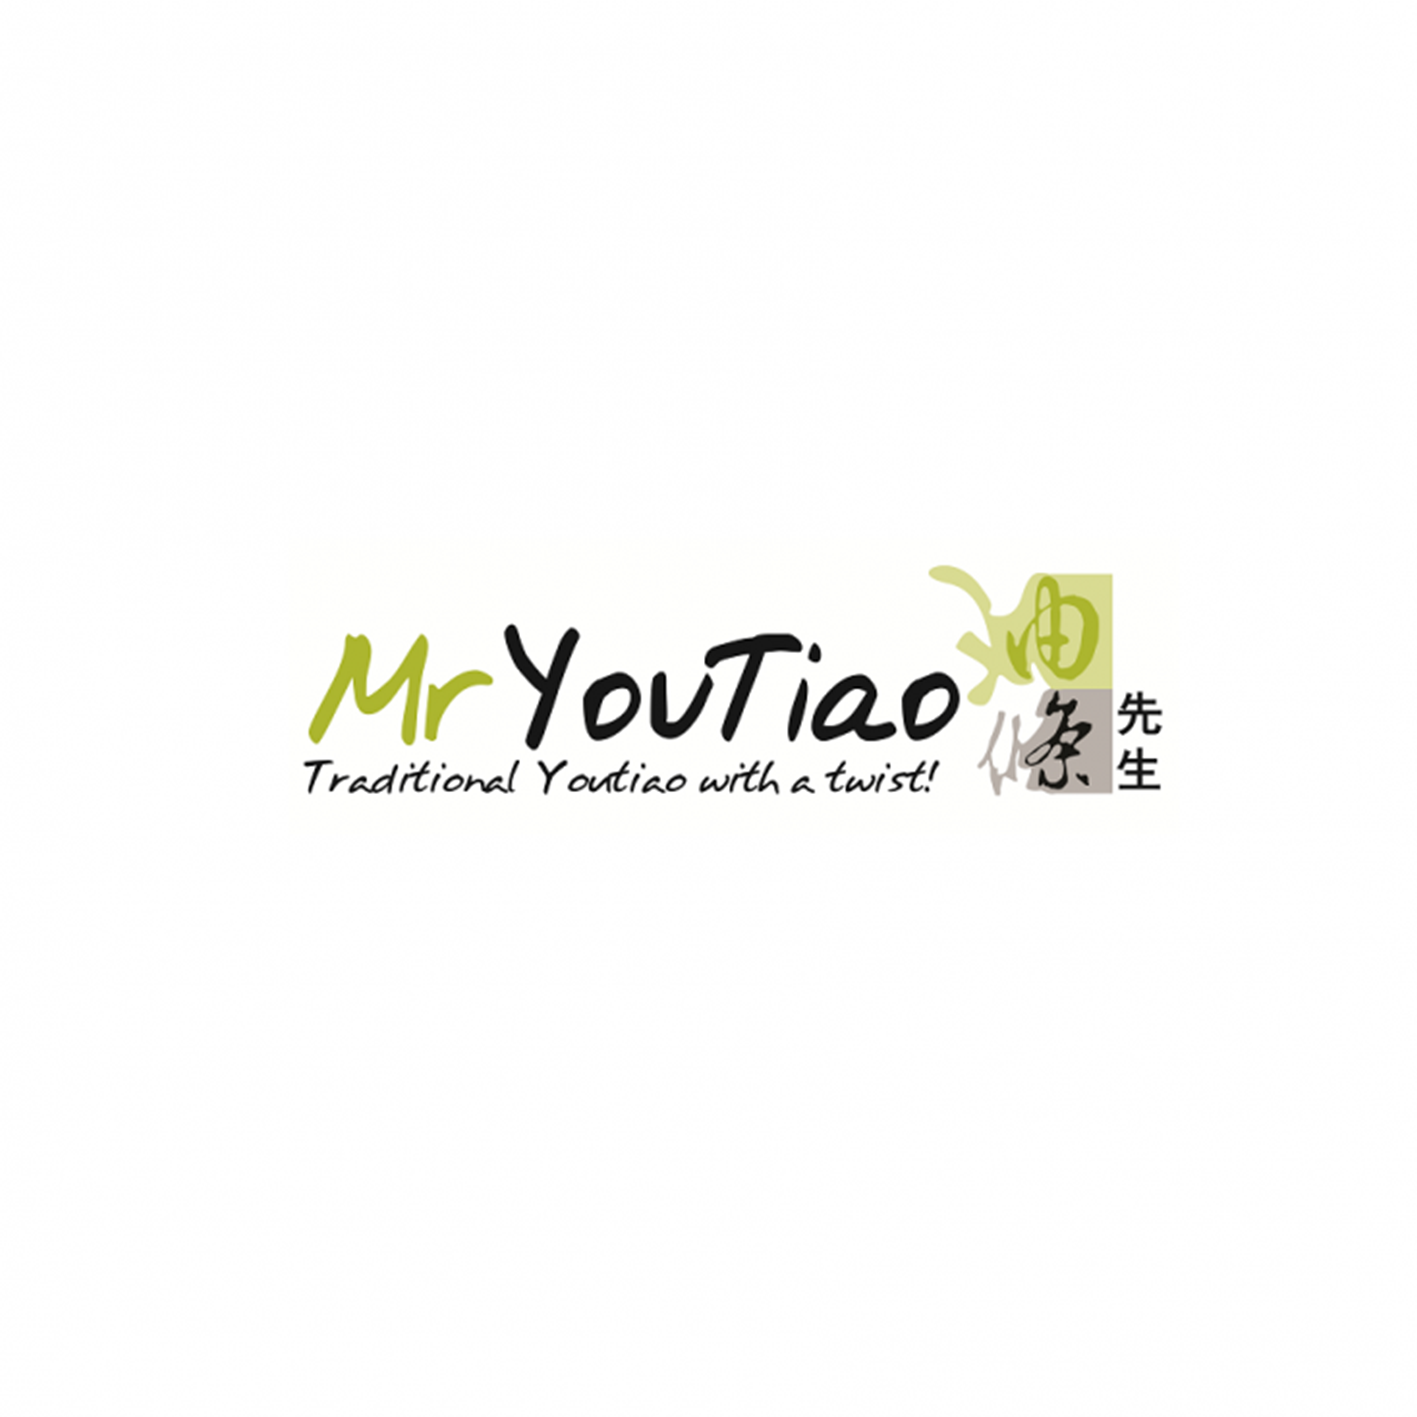 $2 Cash Voucher at Mr YouTiao - Get Deals, Cashback and Rewards with ShopBack GO